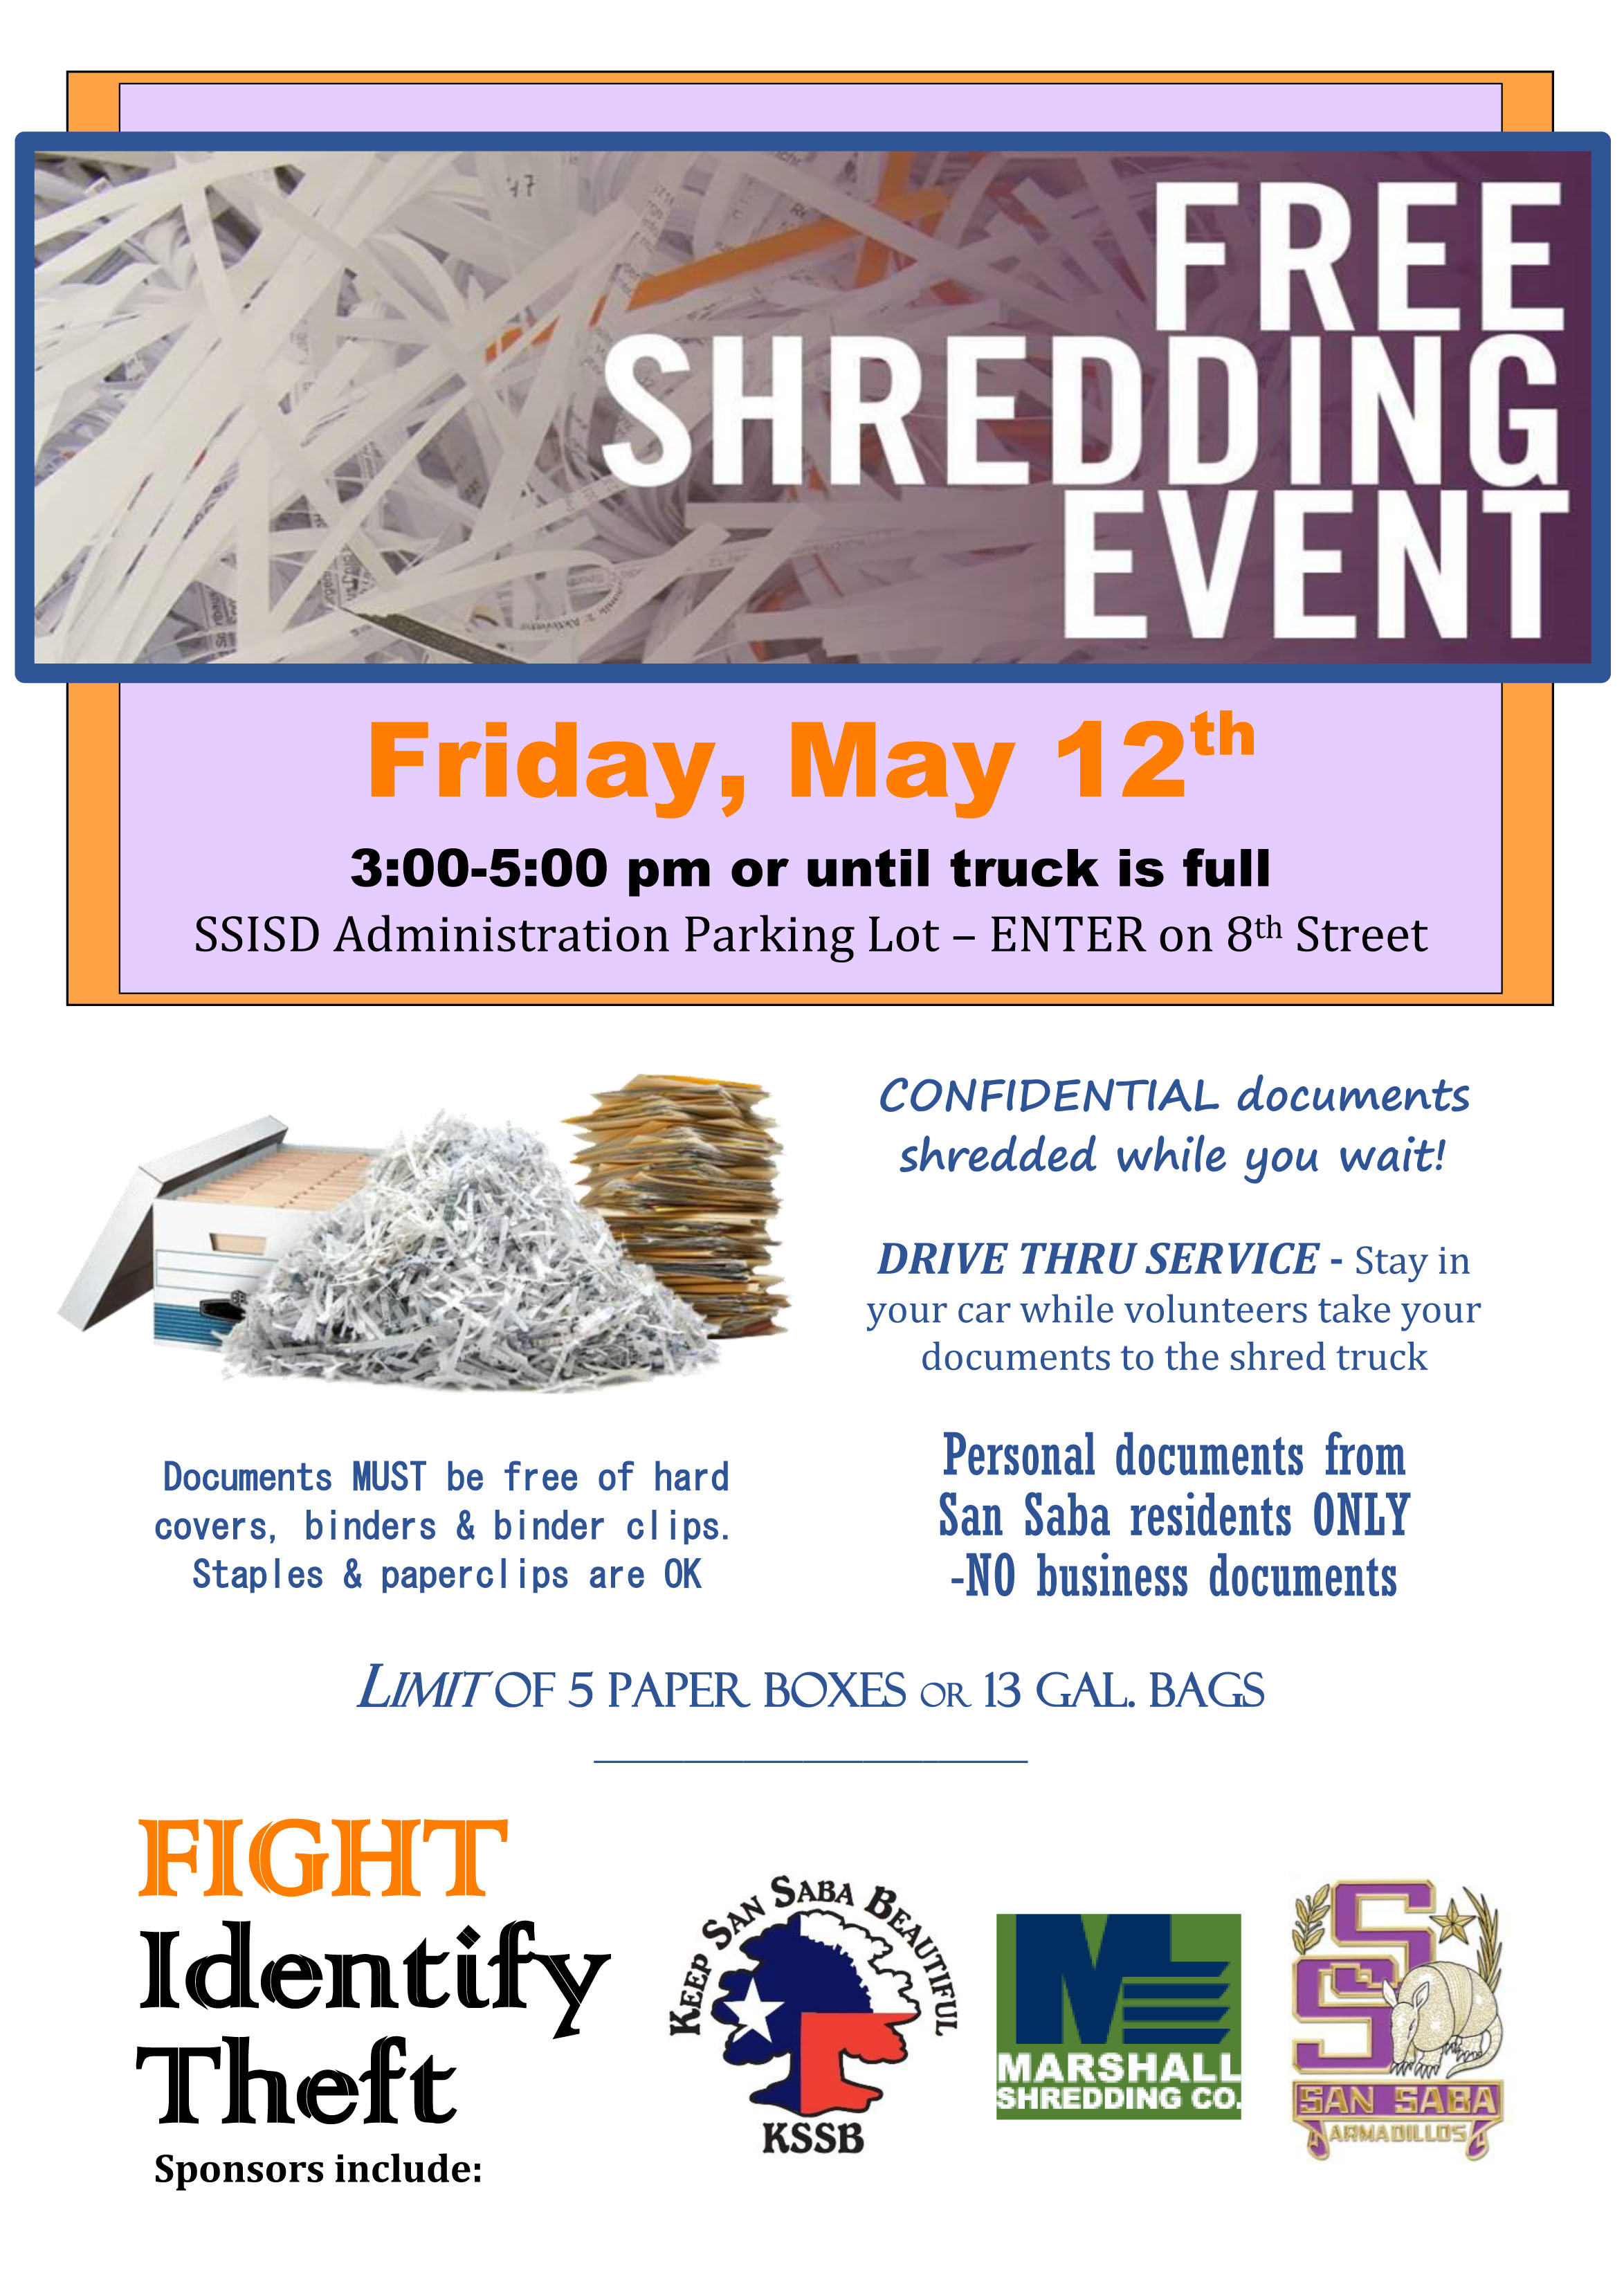 Free Xml Calendar Code Add A Google Calendar To Your Website Calendar Help Kssb Free Shredding Event San Saba Texas